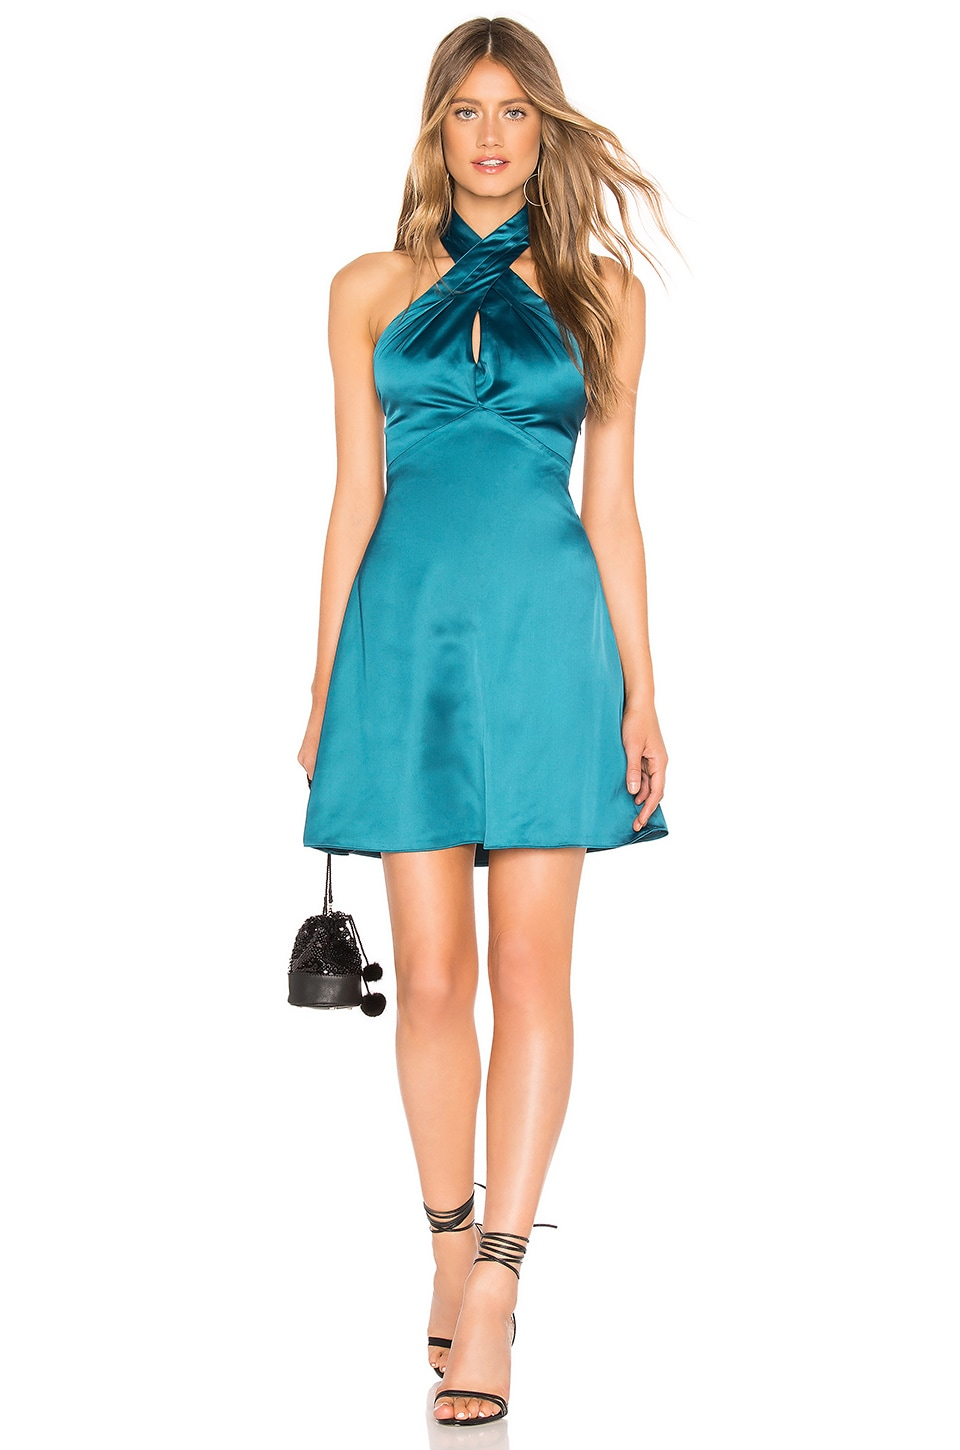 About Us Amerie Halter Dress in Teal